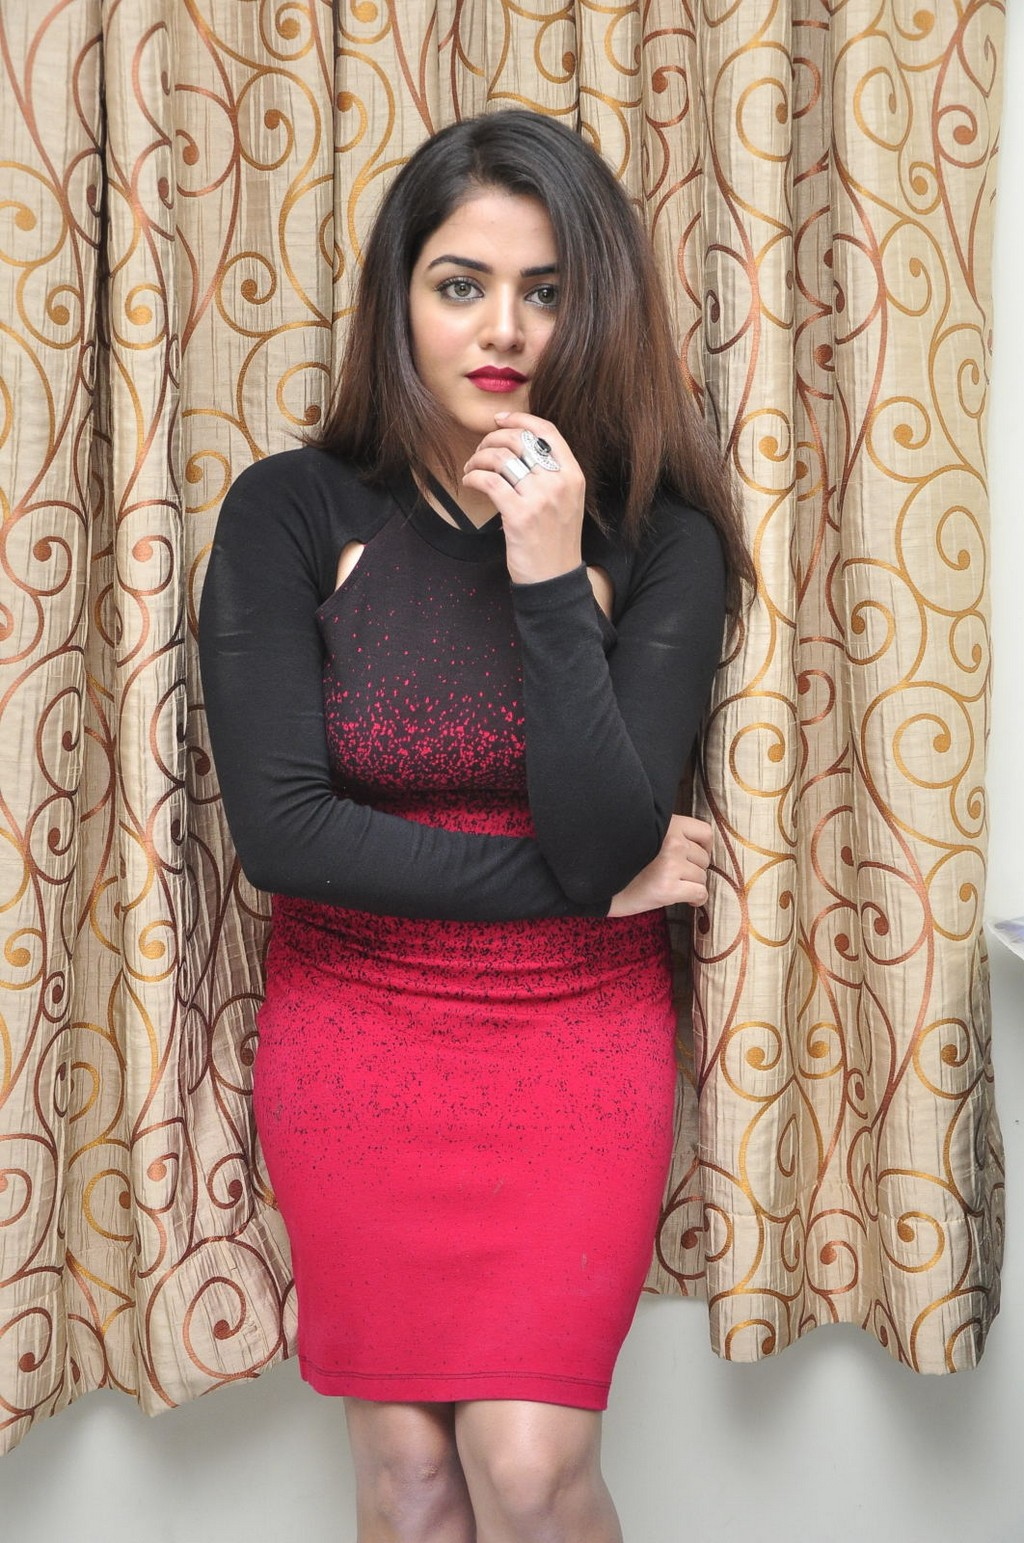 Glamours Tollywood Actress Wamiqa Gabbi Hot Stills In Red Dress